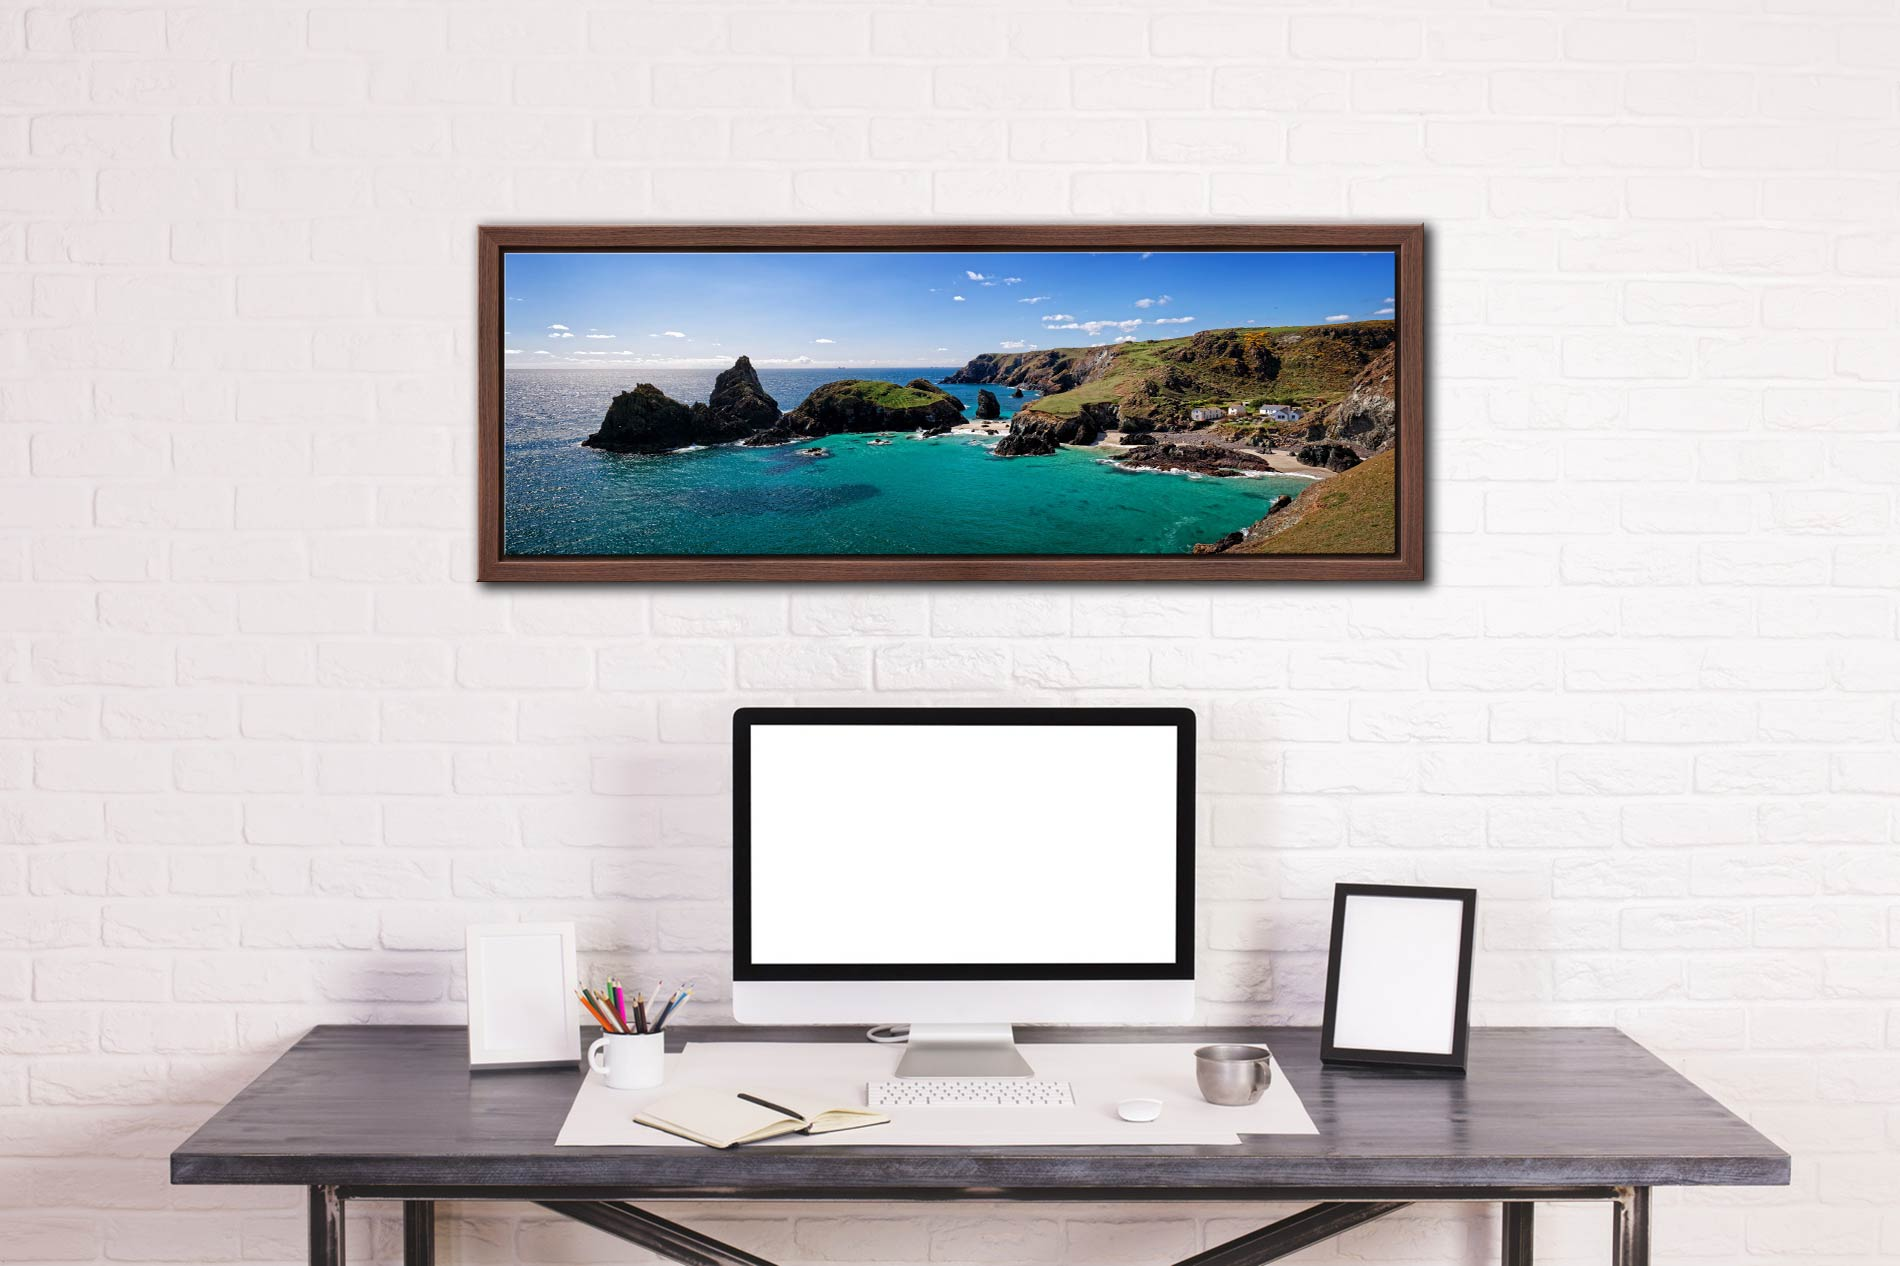 The rock stacks and small islands off Kynance Cove on the Lizard in Cornwall - Walnut floater frame with acrylic glazing on Wall